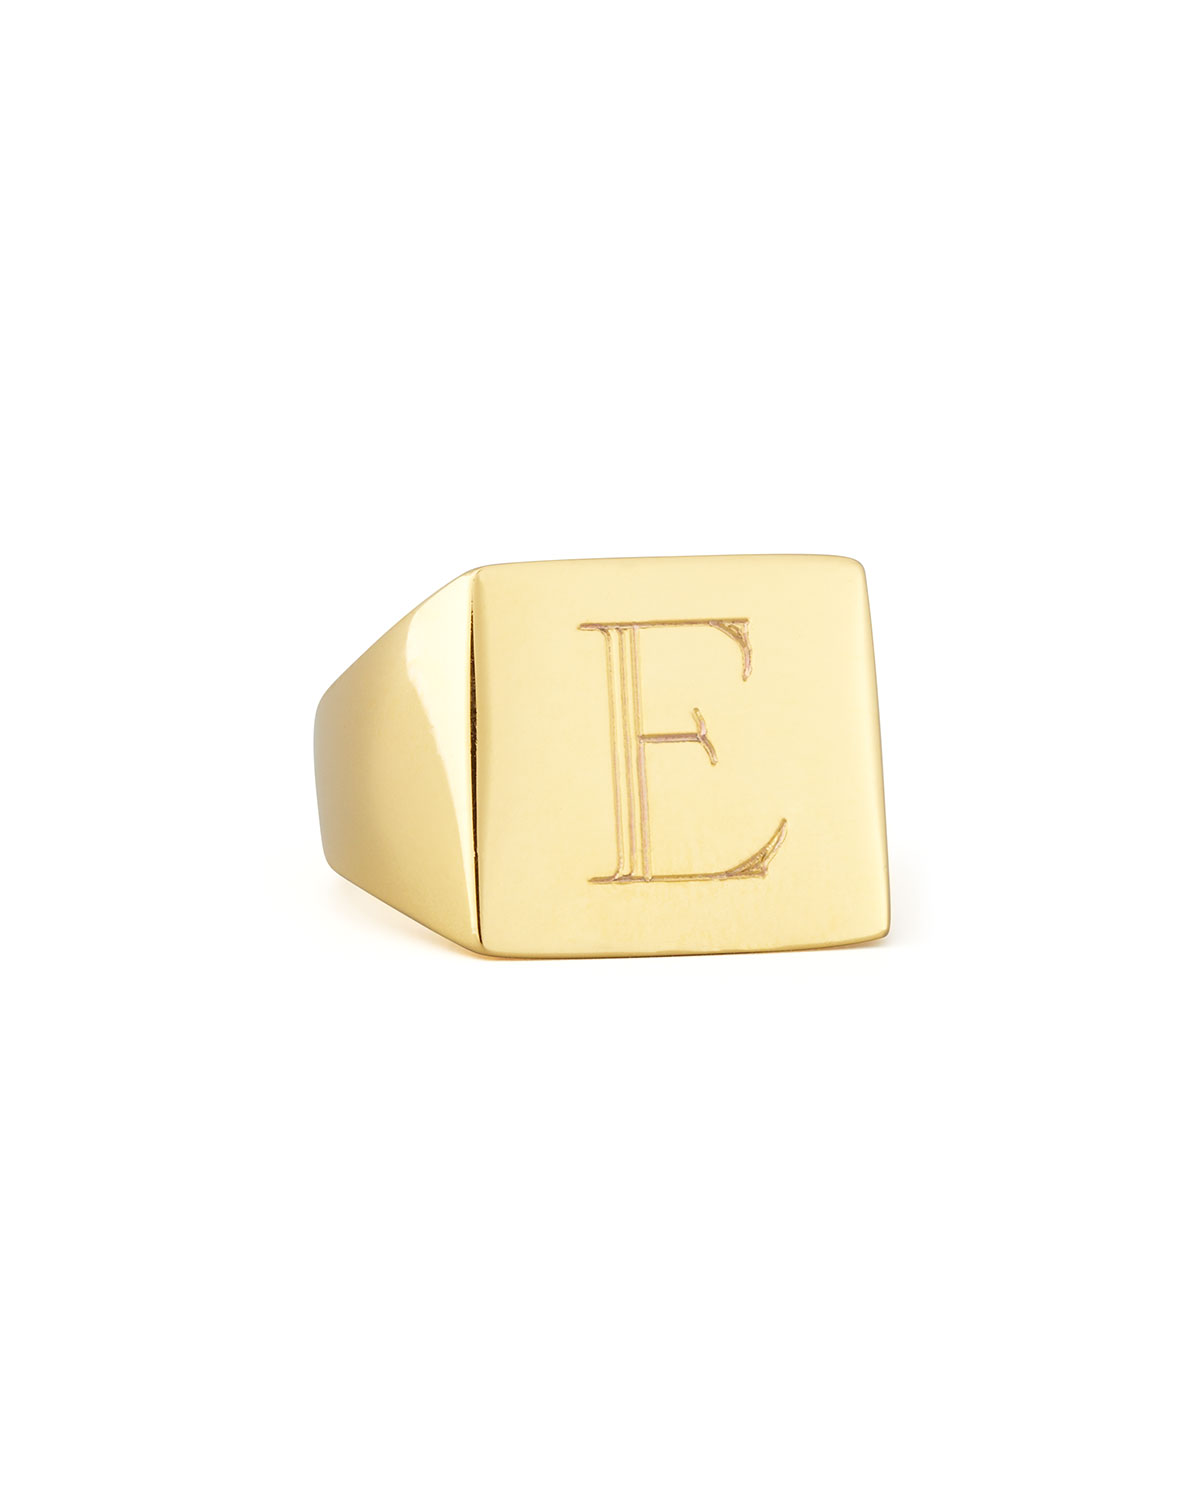 Letter-Engraved Square Signet Ring, Gold, Size: 7, R - Sarah Chloe